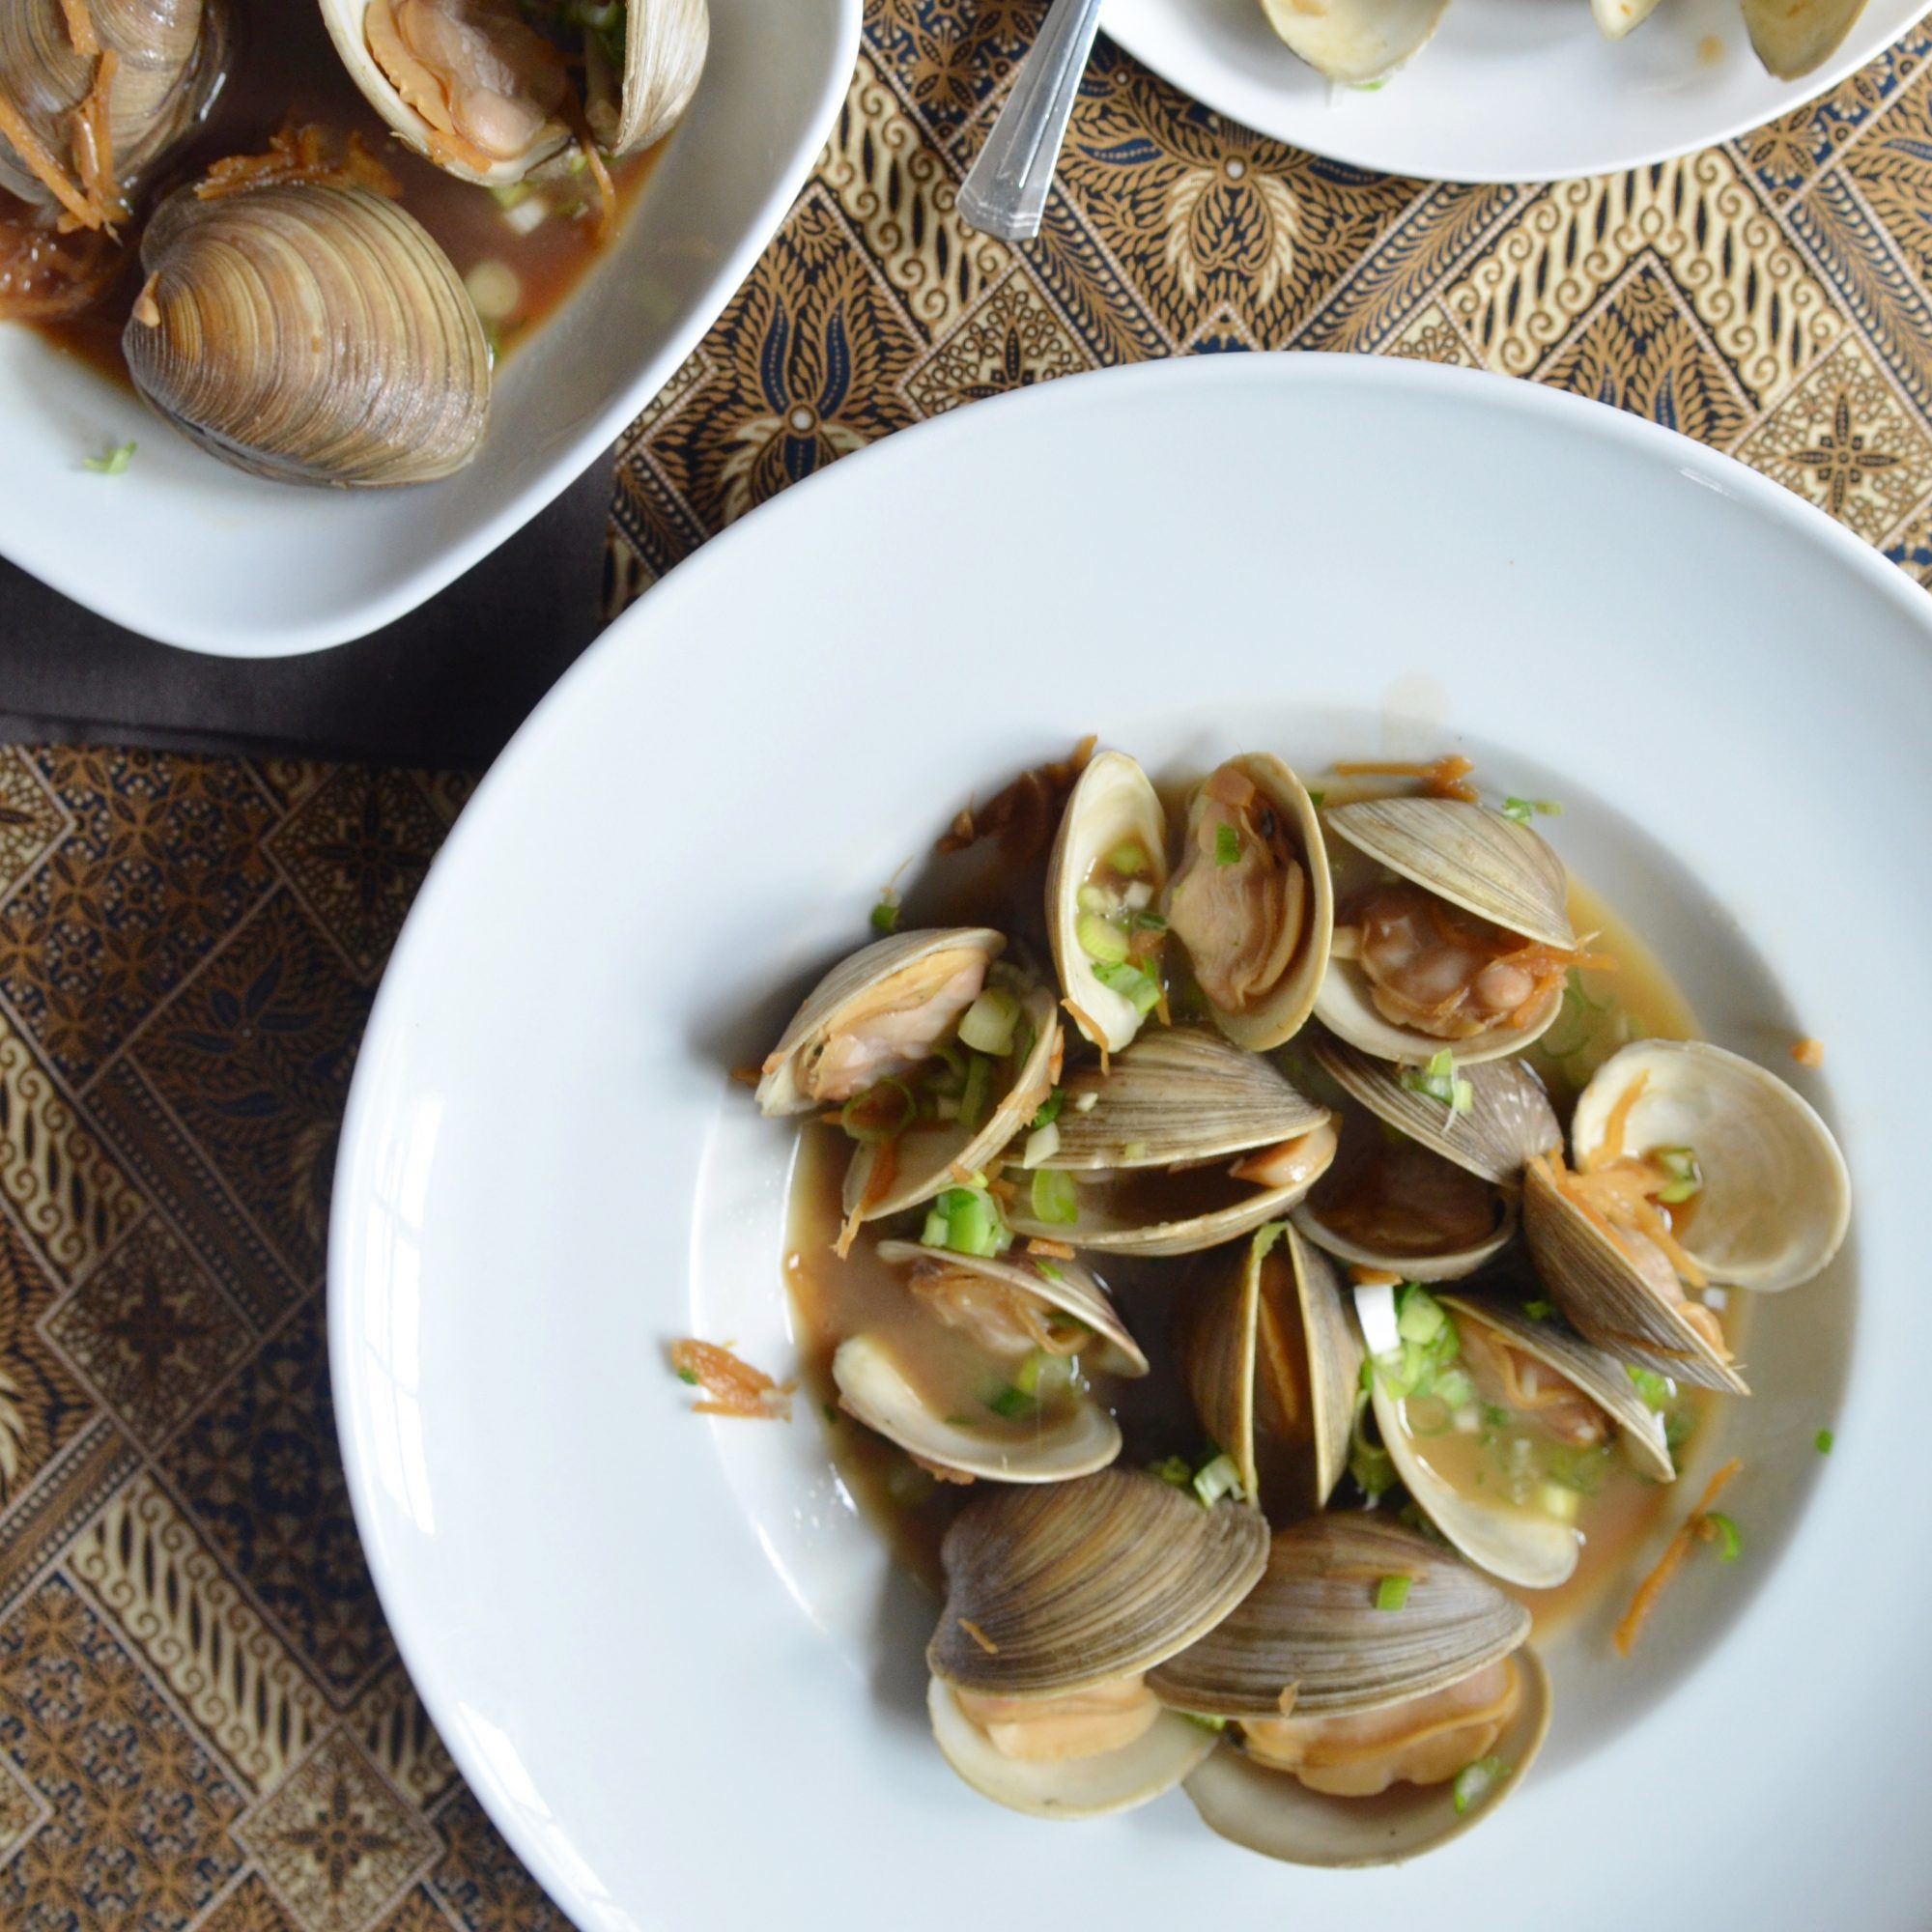 Manila Clams with Soy Butter